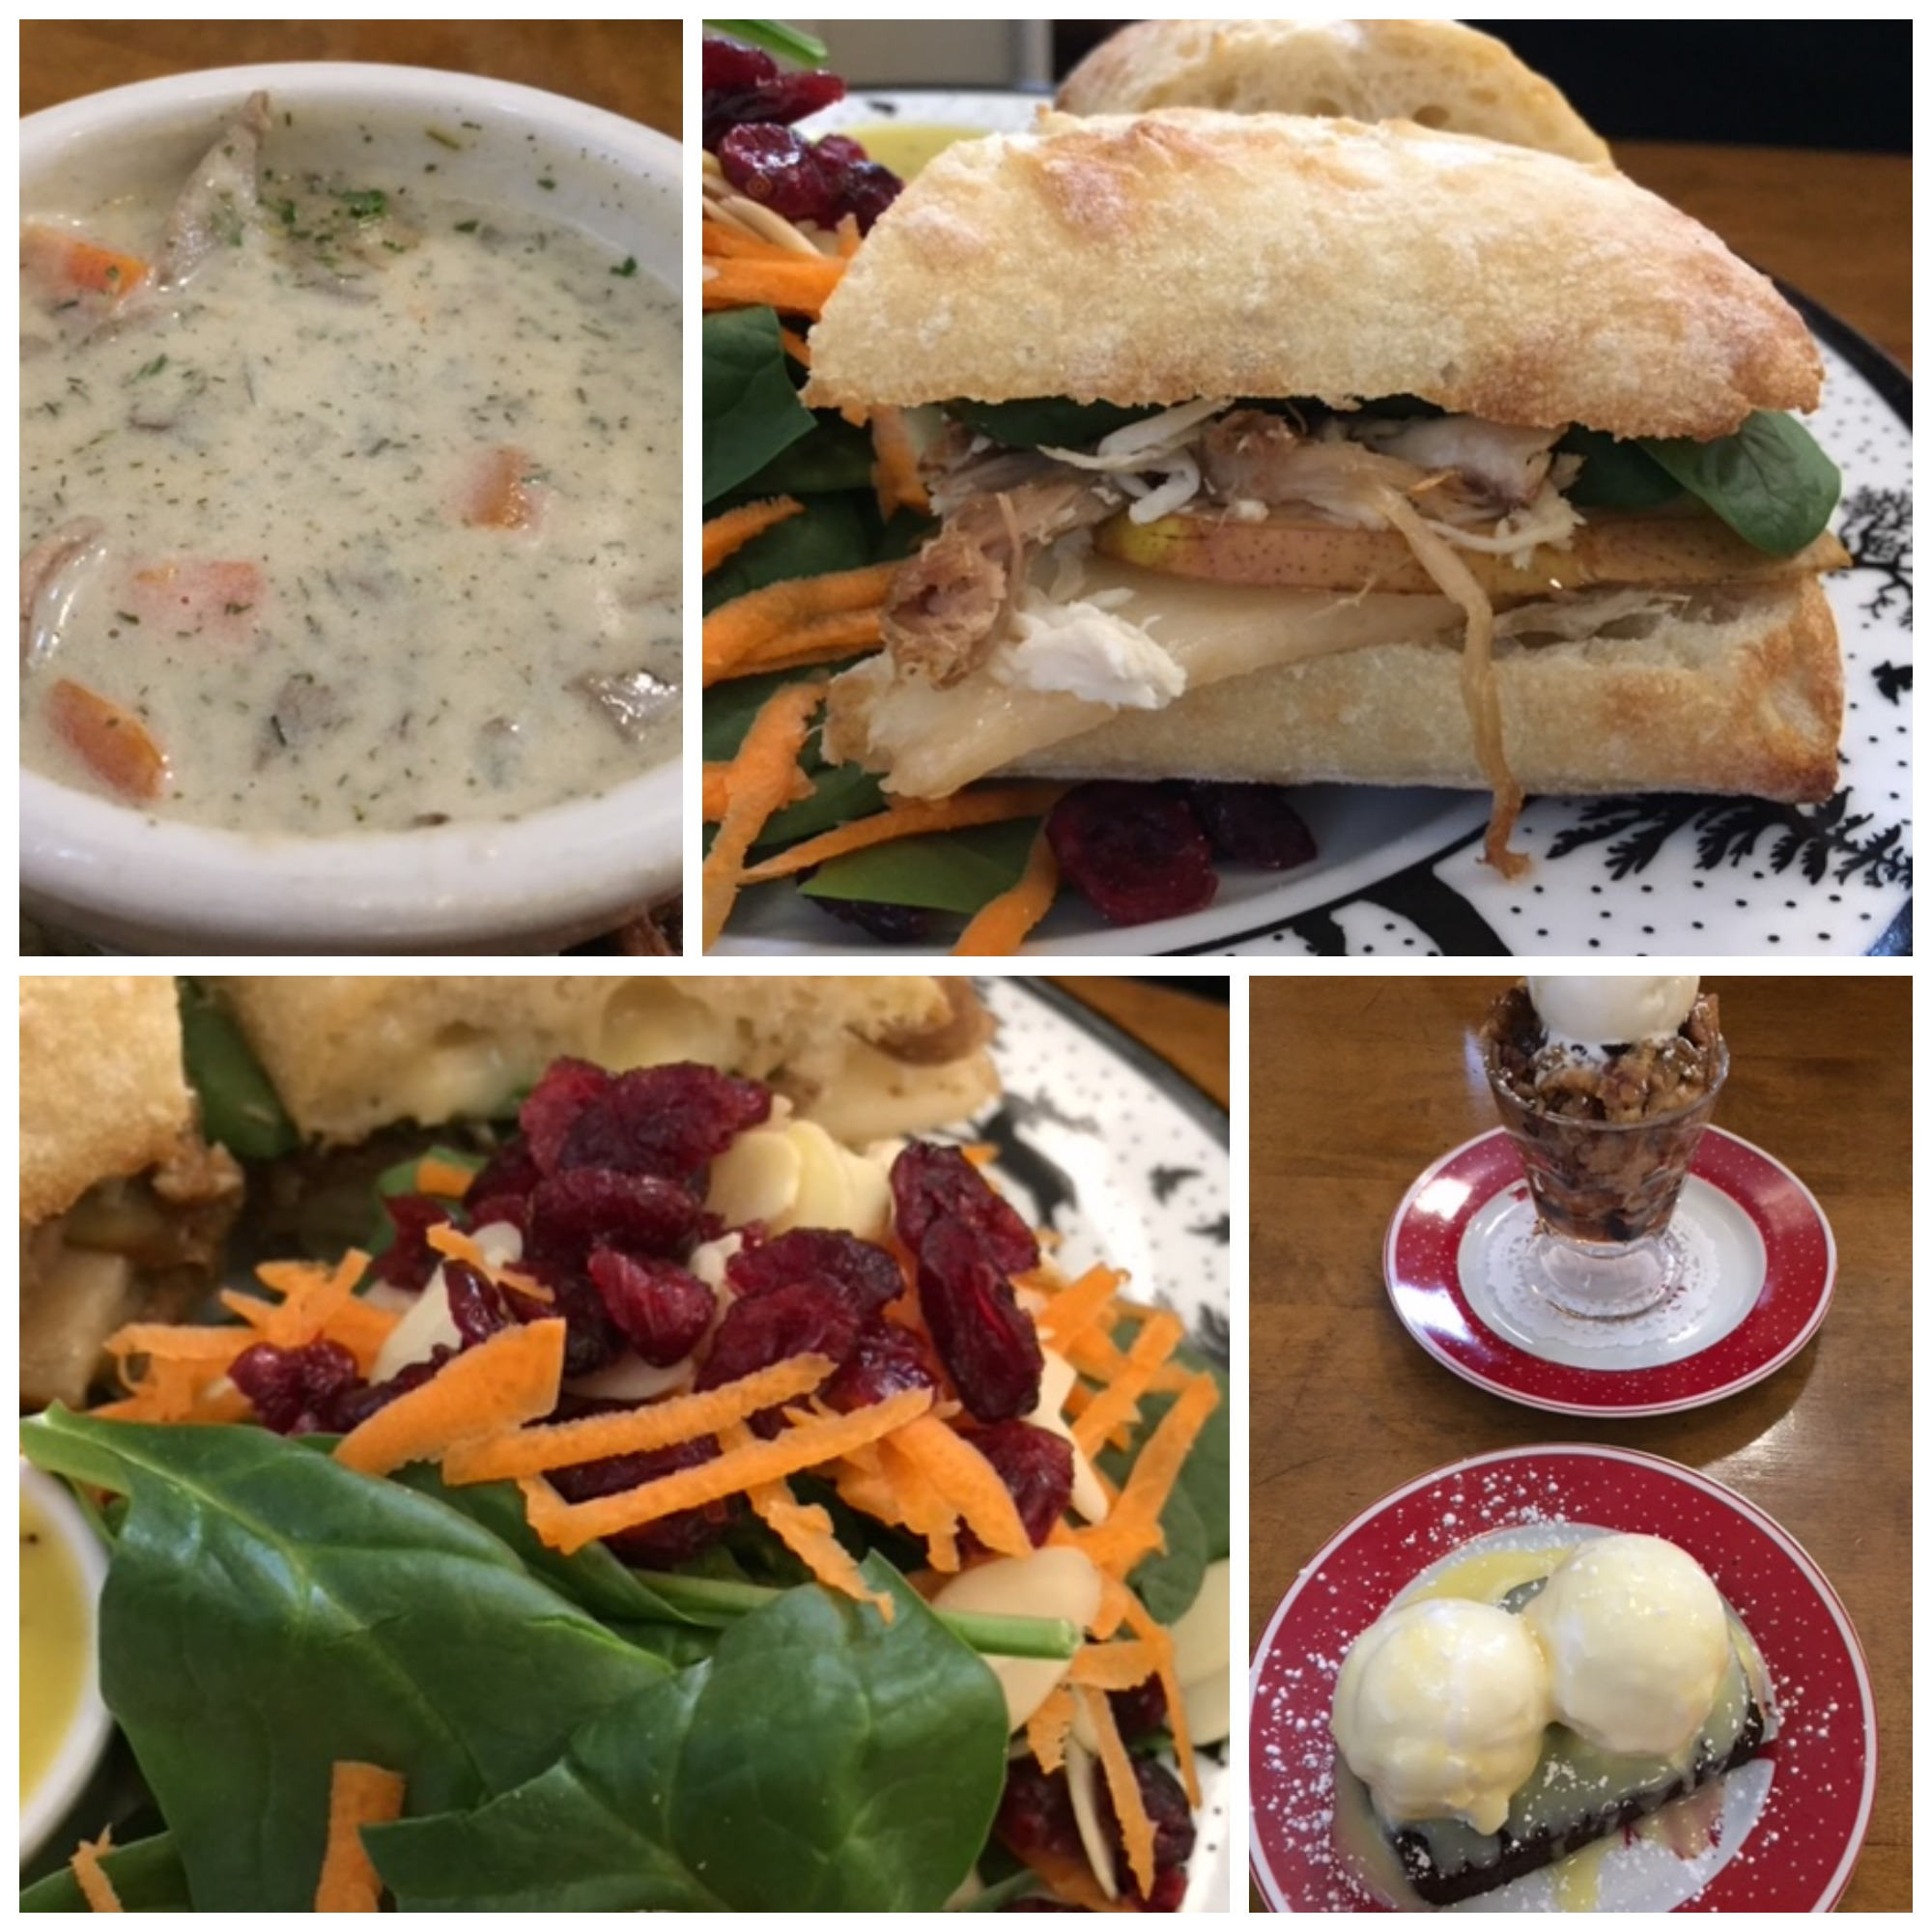 Cream of Mushroom Potato Dill Chowder  Turkey, Brie and Pear with Gravelbourg Mustard Ciabatta  Grandma's Bread & Butter Pudding  Gingerbread with Lemon Butter  Cranberry Almond Spinach Salad